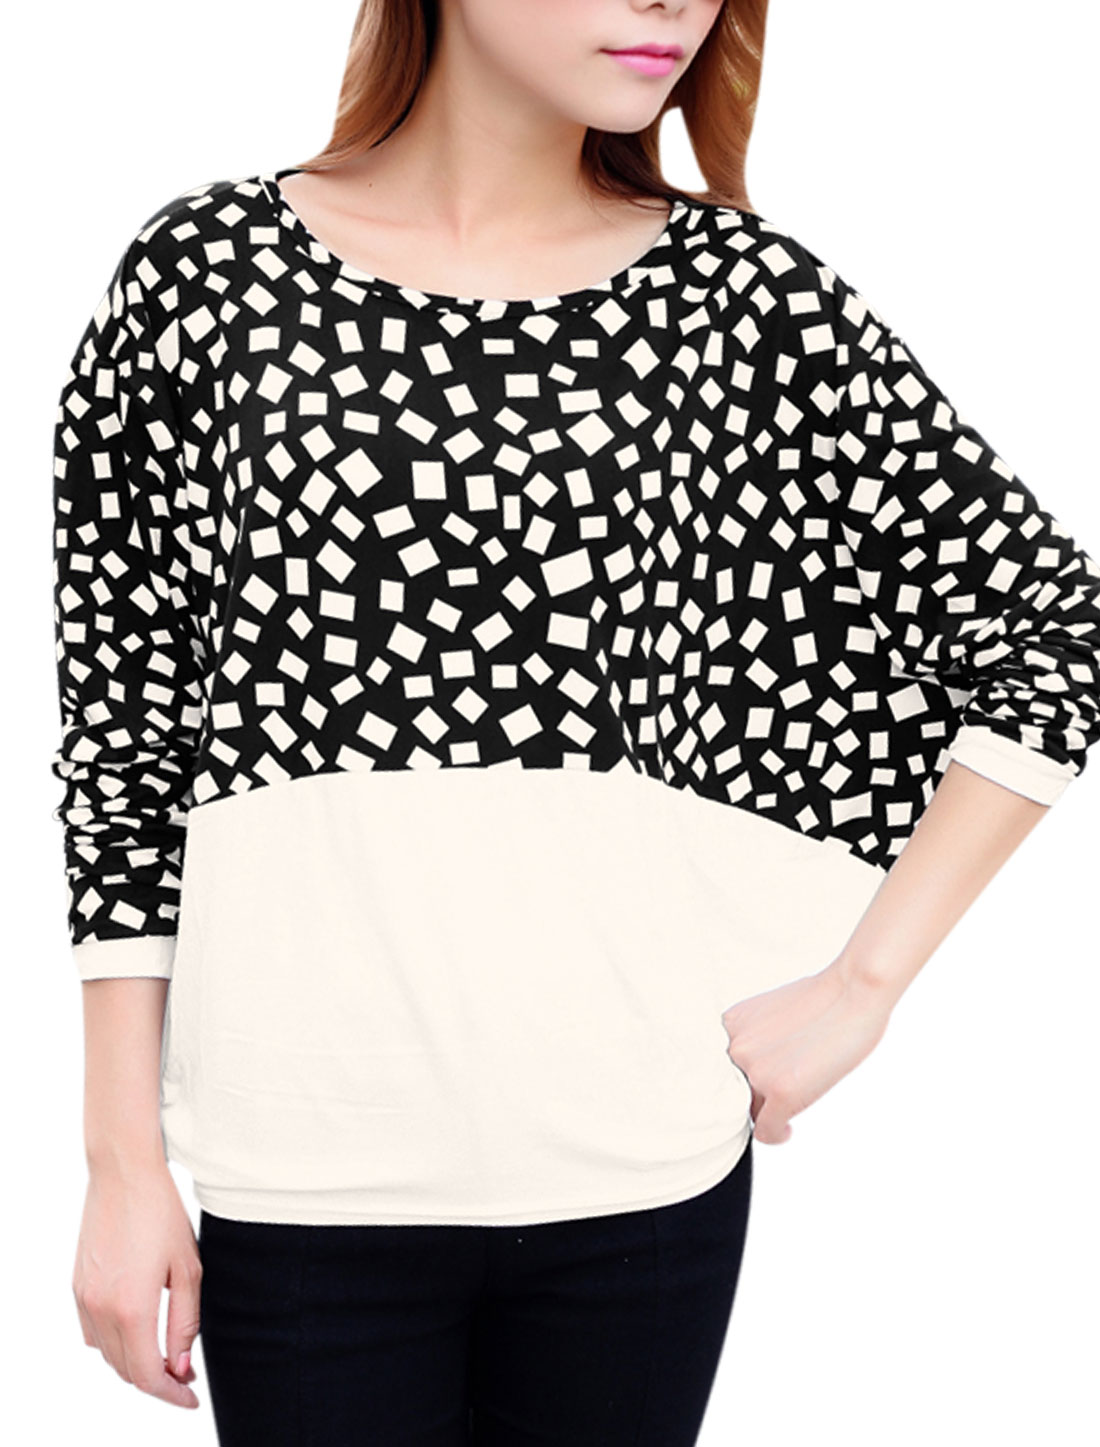 Woman Geometric Print Patched Design Contrast Color Loose Fit Top White Black XS